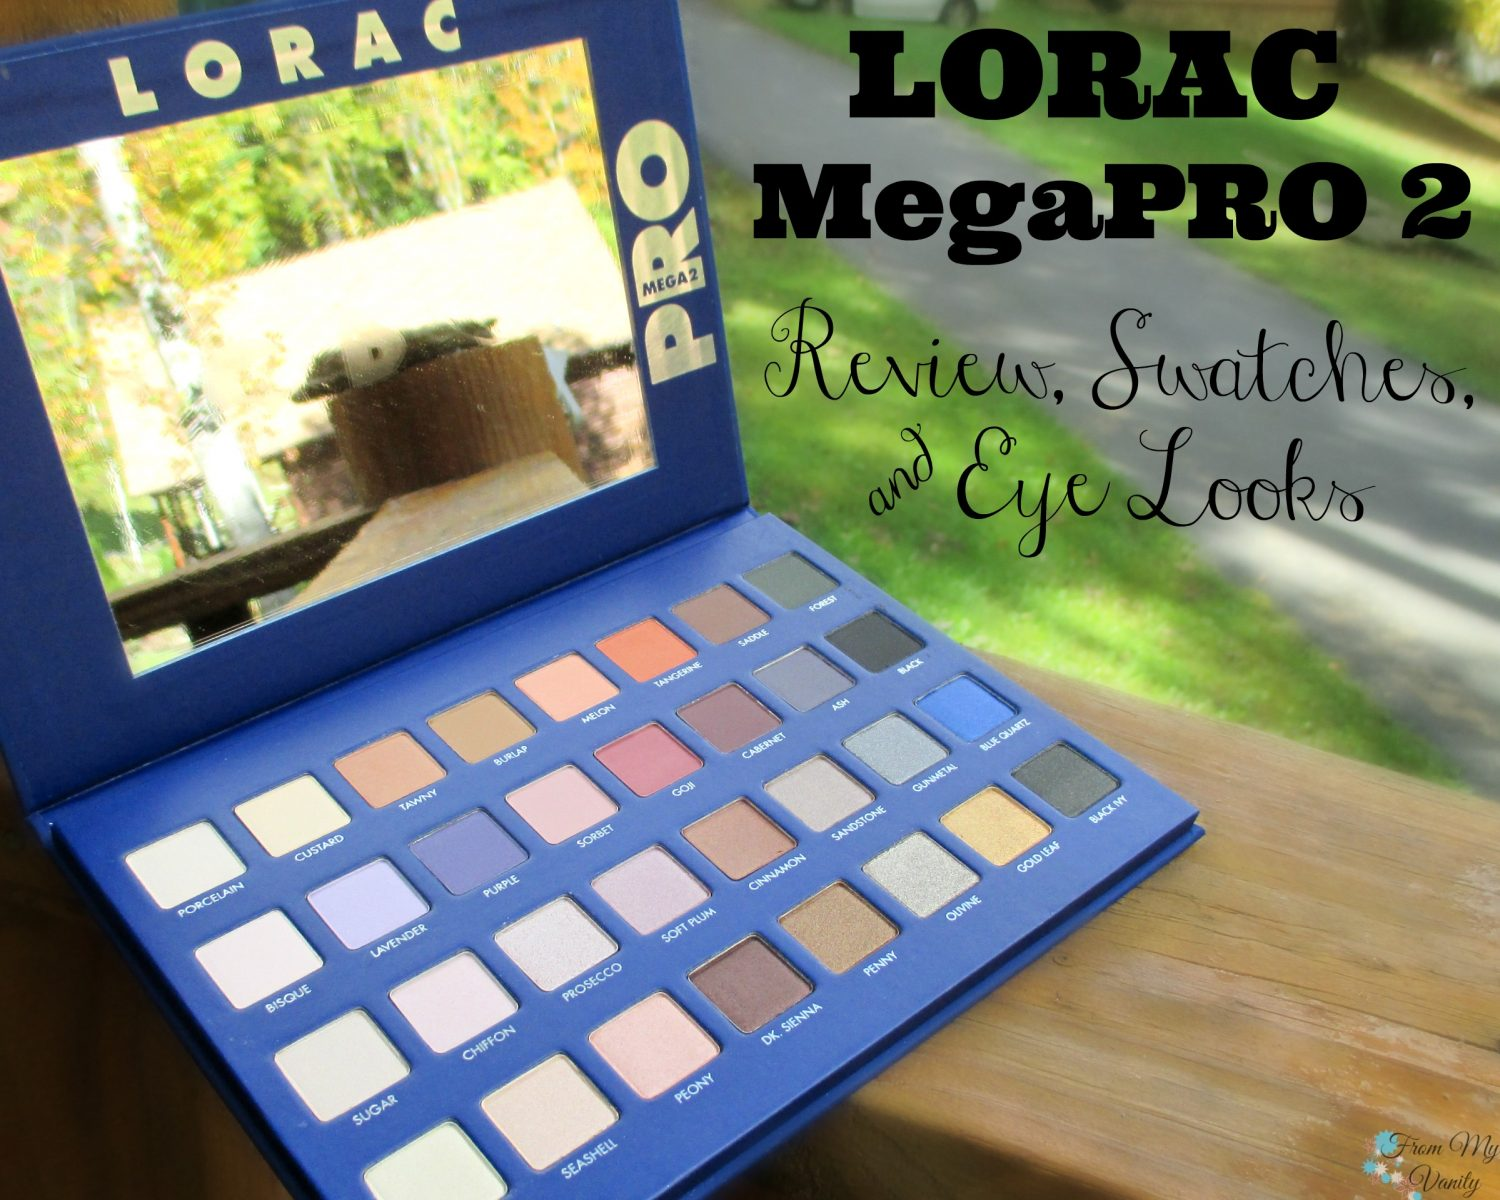 LORAC Mega Pro 2 Eyeshadow Palette // Review, Swatches, & Eye Looks // #LORACCosmetics #MegaPro2 FromMyVanity.com